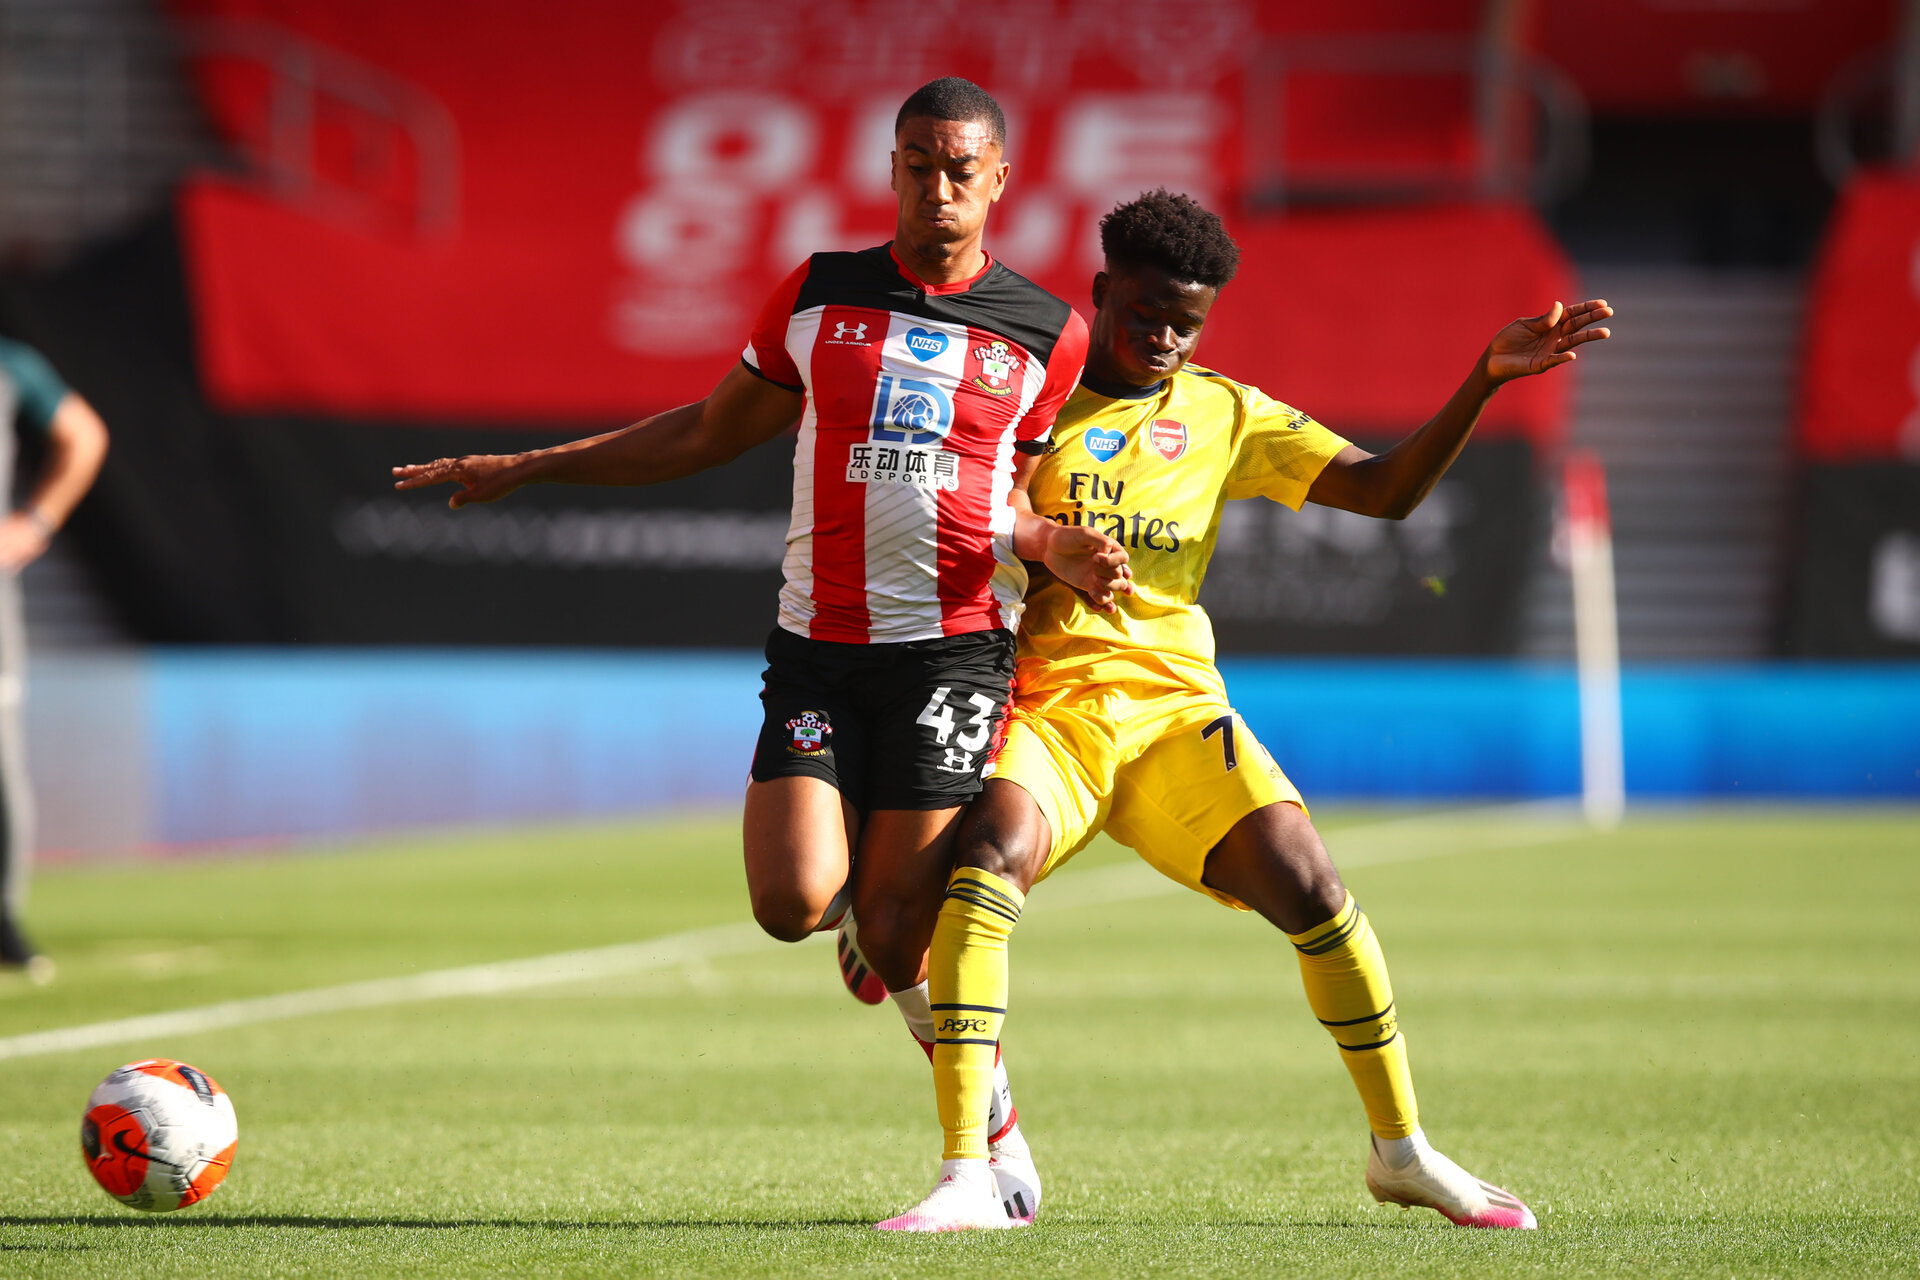 SOUTHAMPTON, ENGLAND - JUNE 25: (L) Yan Valery and (R) Bukoyo Saka during the Premier League match between Southampton FC and Arsenal FC at St Mary's Stadium on March 21, 2020 in Southampton, United Kingdom. (Photo by Matt Watson/Southampton FC via Getty Images)